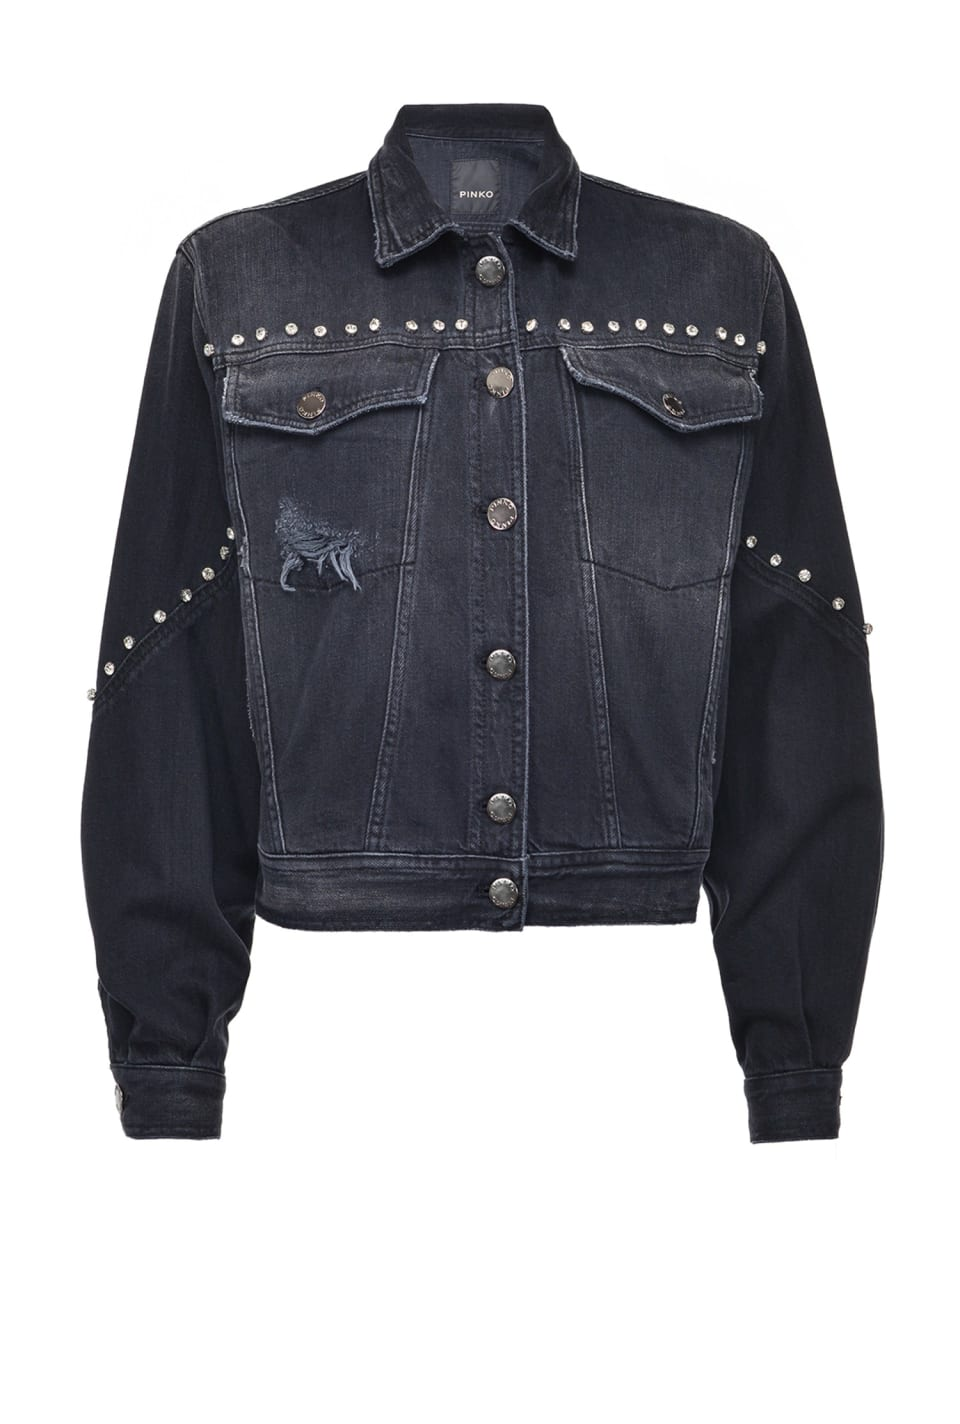 Black denim jacket - Pinko